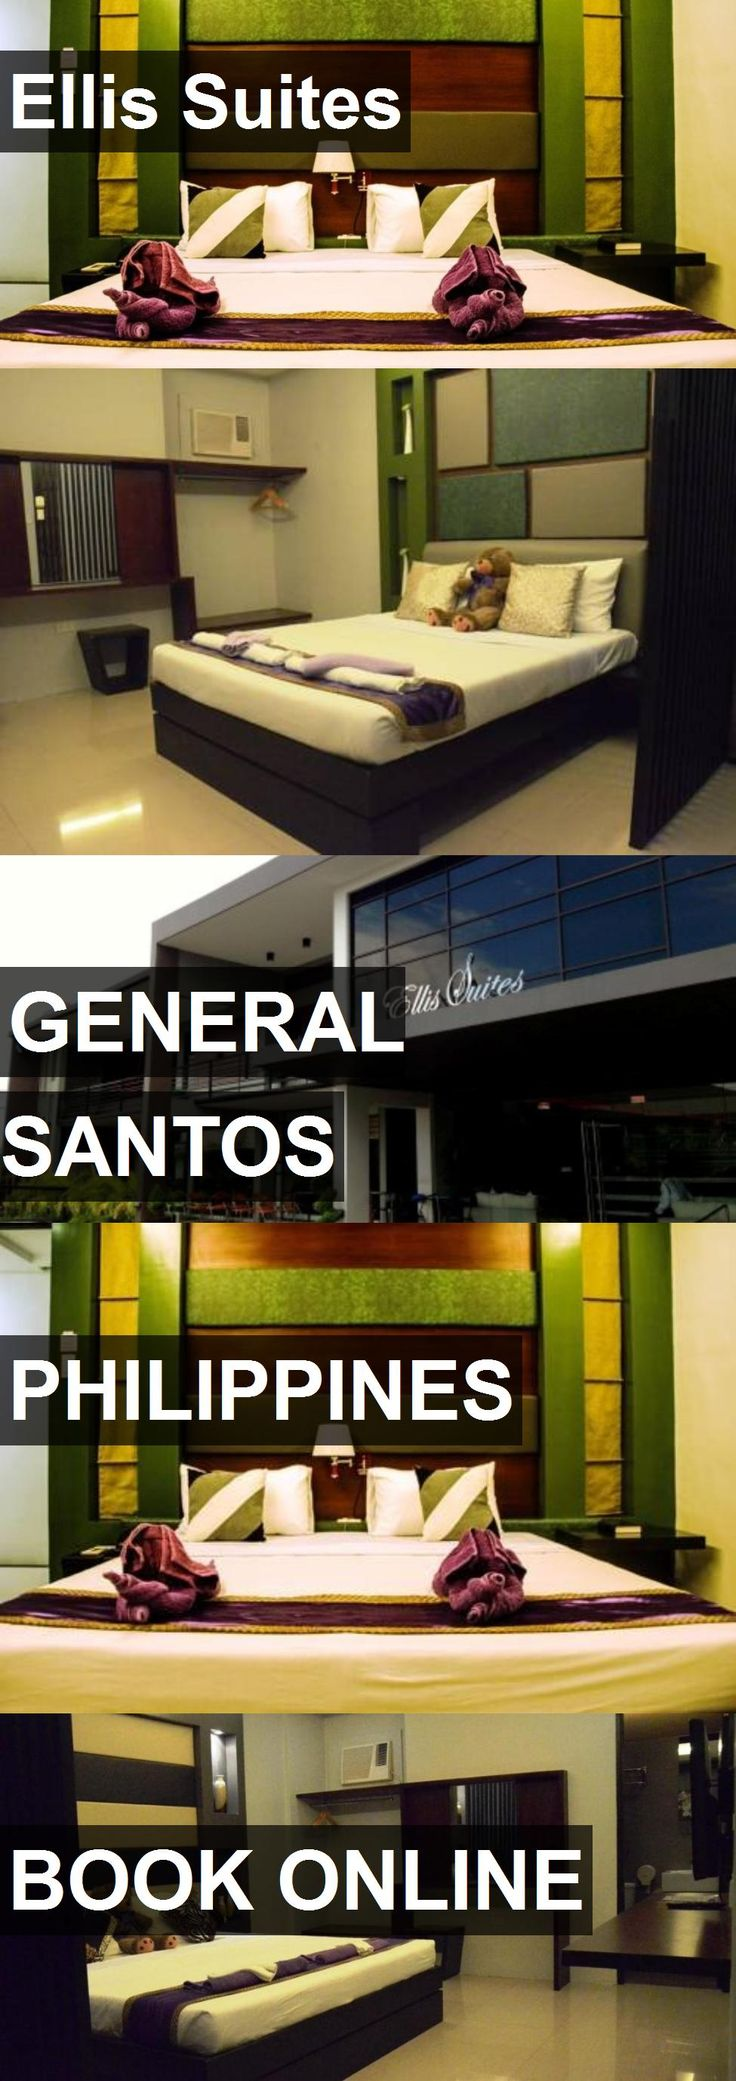 Hotel Ellis Suites in General Santos, Philippines. For more information, photos, reviews and best prices please follow the link. #Philippines #GeneralSantos #EllisSuites #hotel #travel #vacation